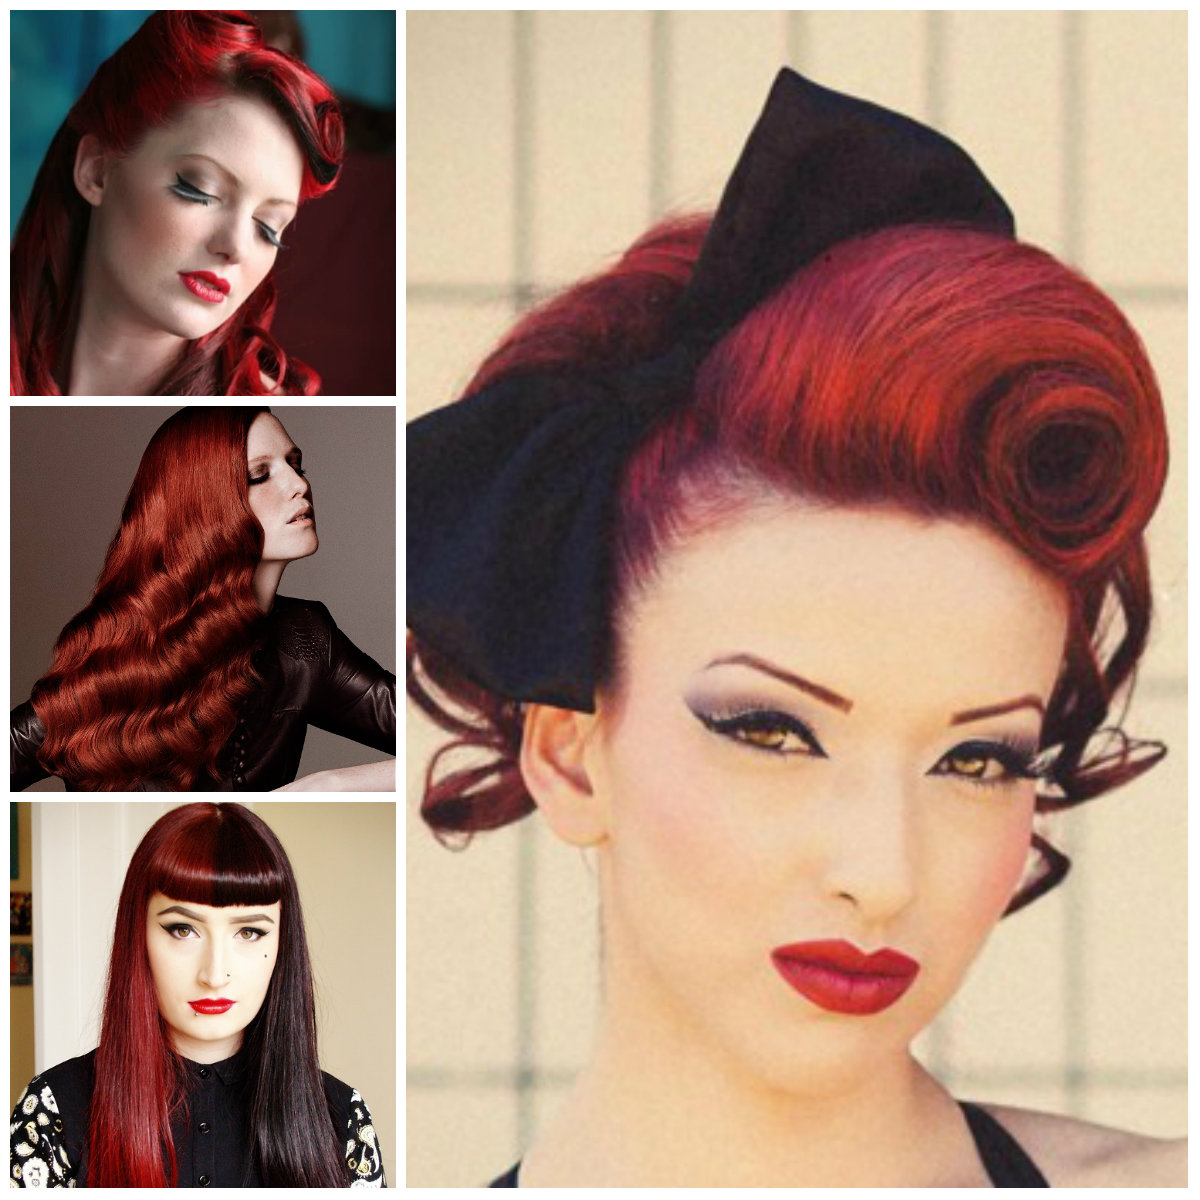 Long Retro Hairstyles on Red Hair | 2019 Haircuts ...